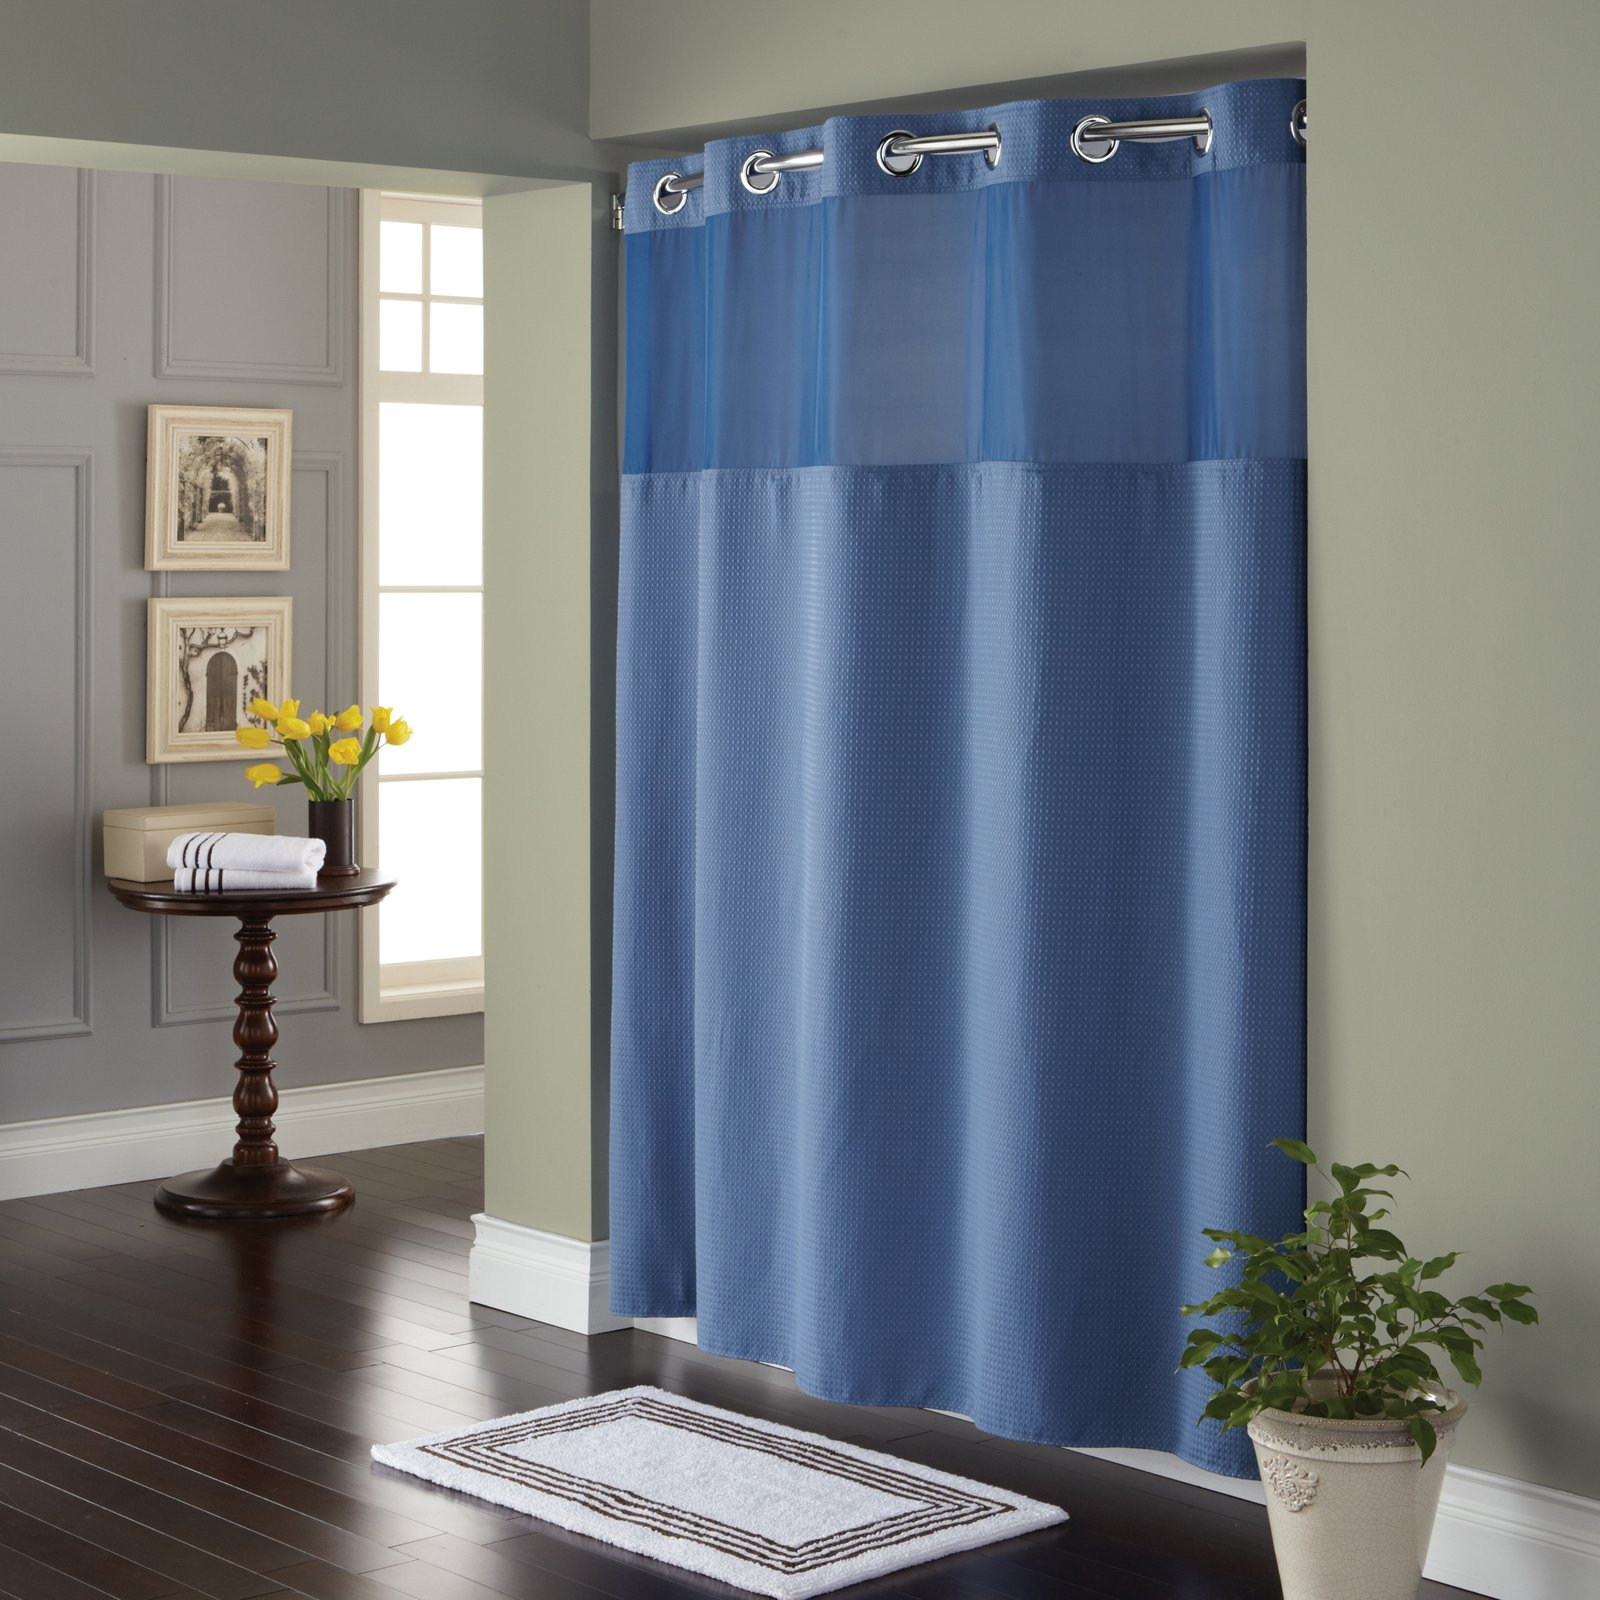 Bathroom Shower Curtain With Clear Panel Hookless Fabric For Proportions 1600 X